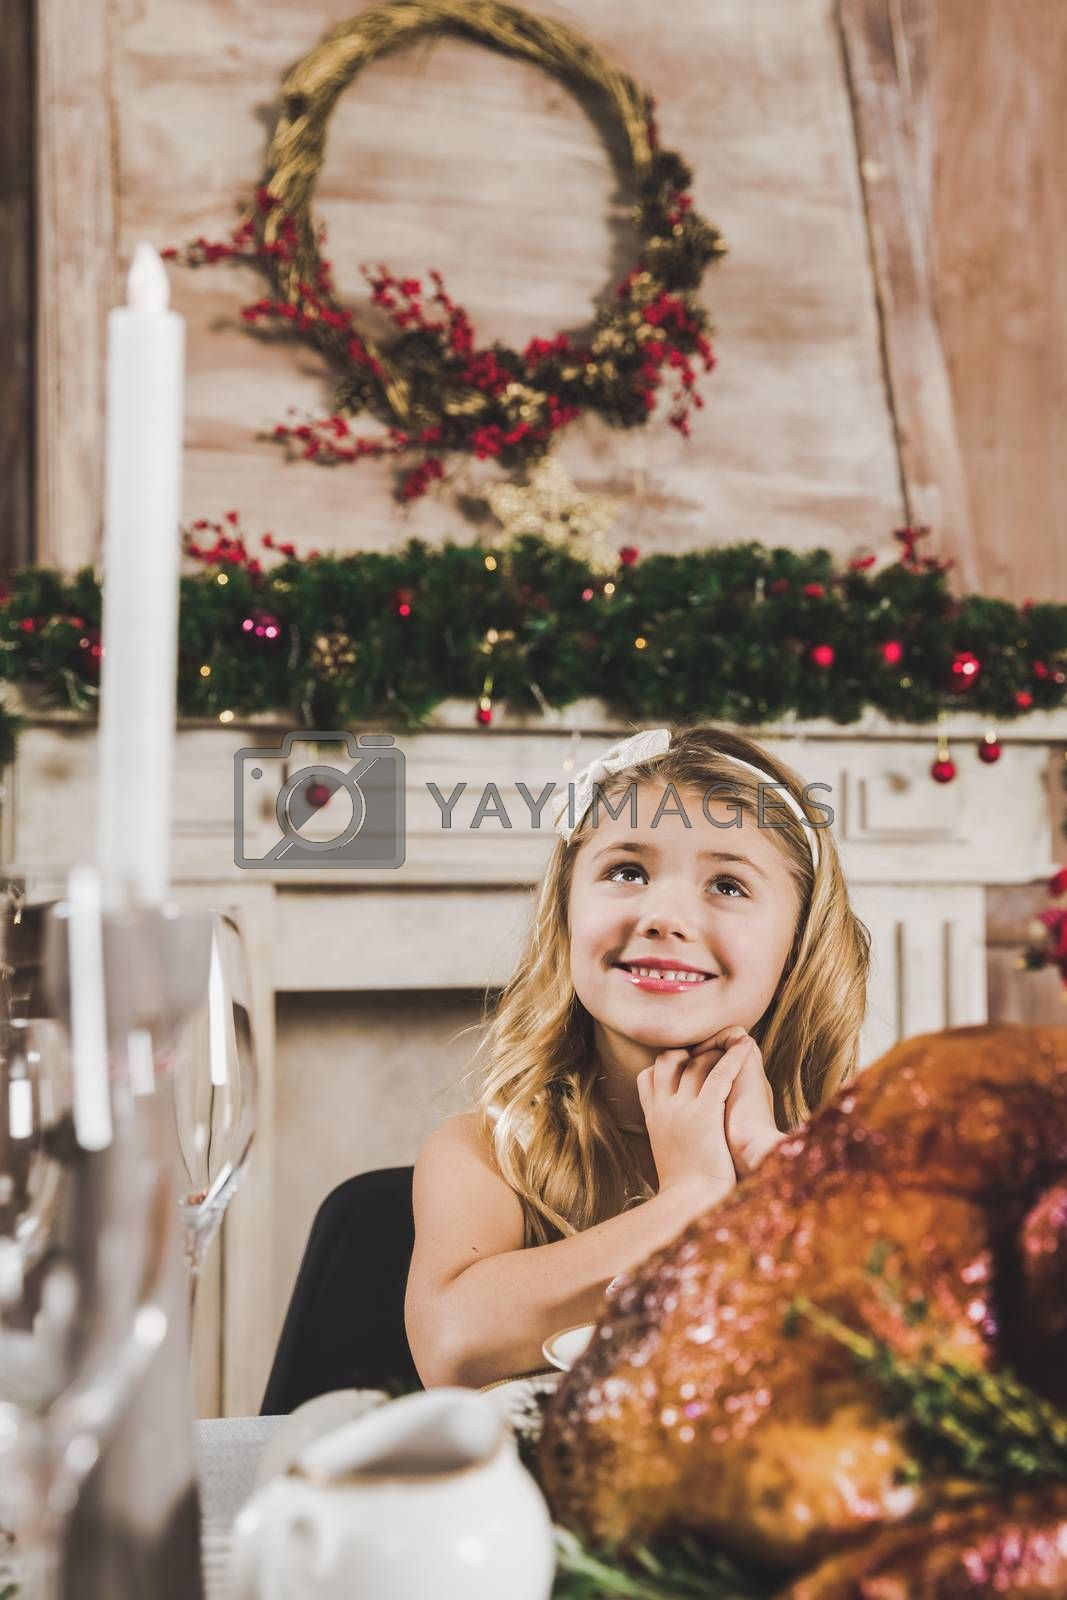 Cute smiling girl sitting at holiday table and looking up at Christmas time